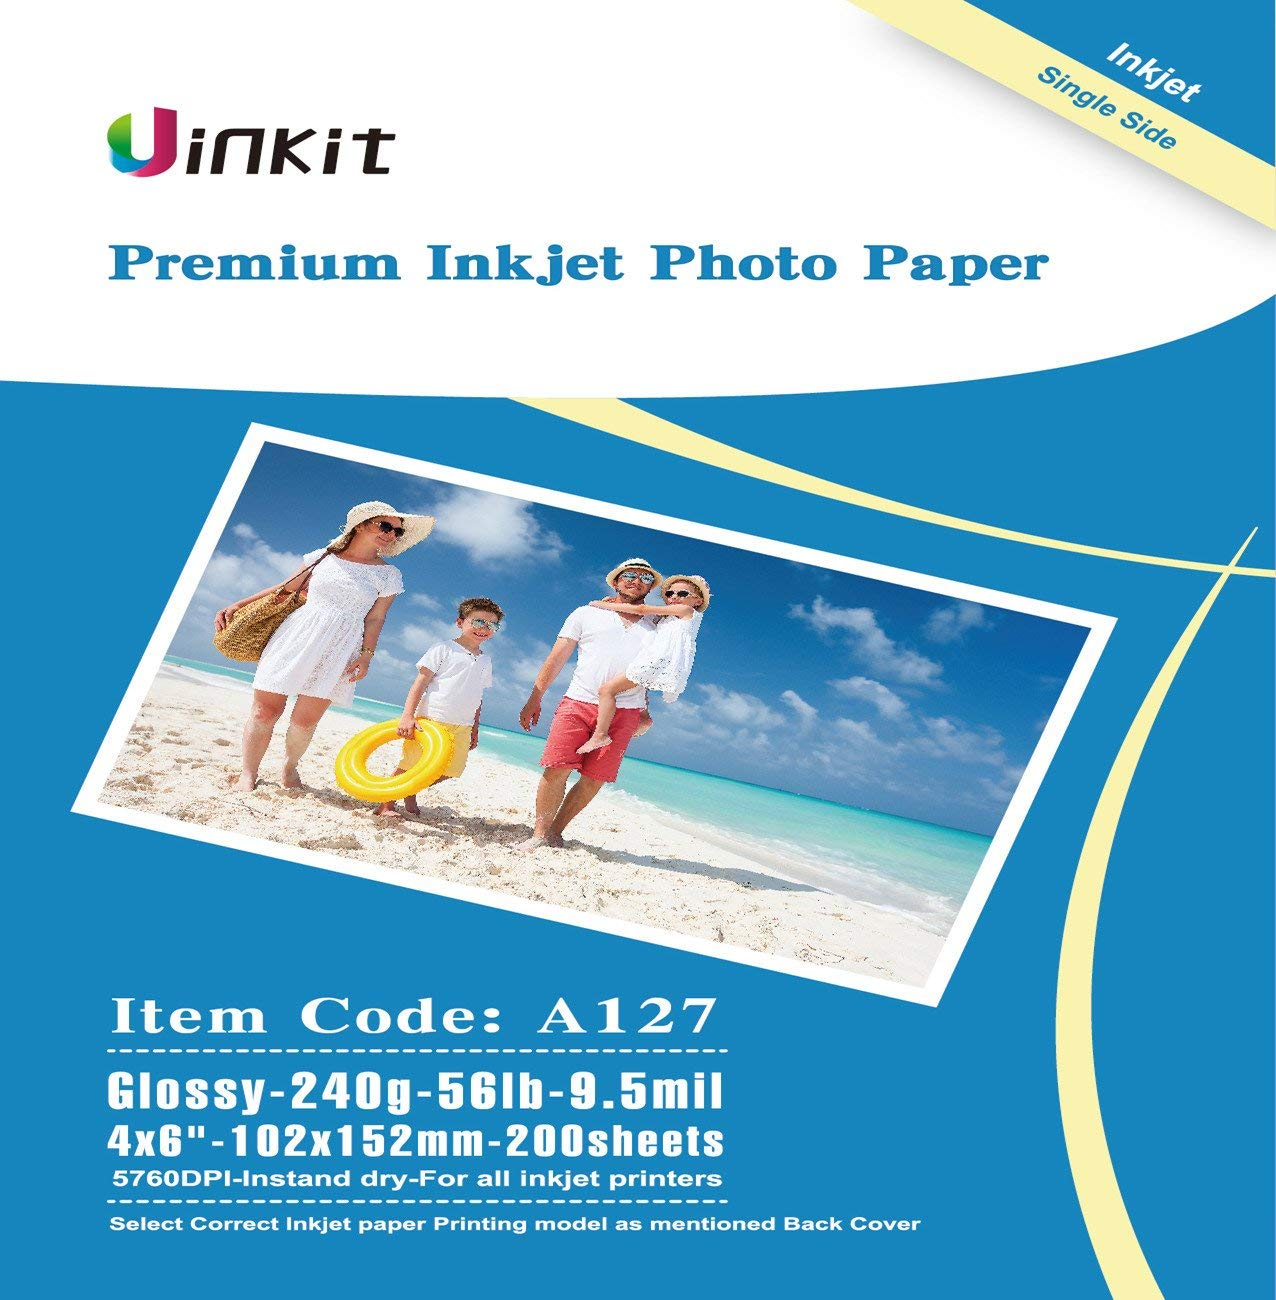 100 Sheets of 4x6 170gsm High-Quality Glossy Photo Paper for Inkjet Printers